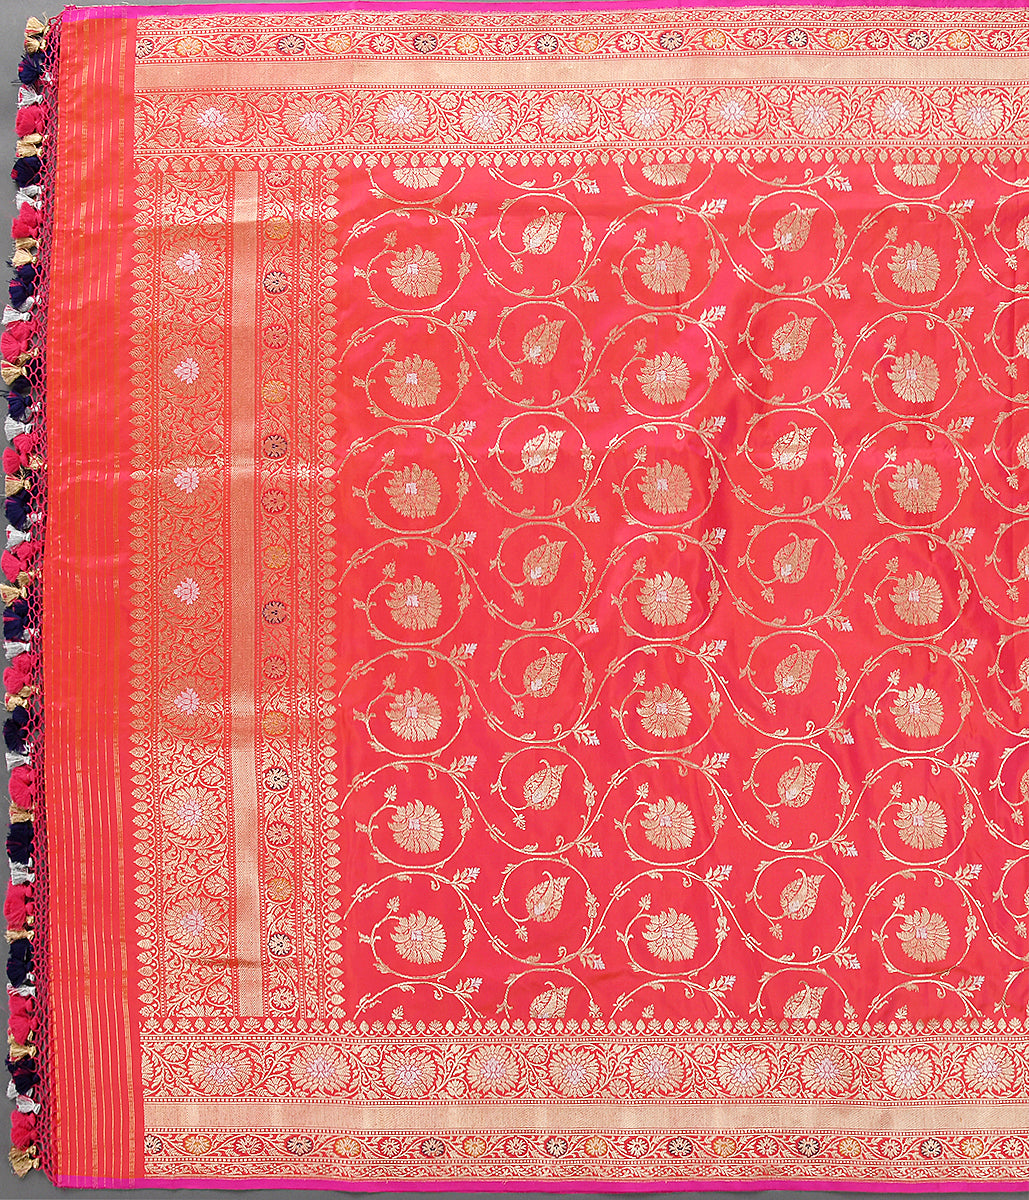 Handwoven Pink and Orange Kadhwa Jangla Dupatta with Sona Rupa Zari